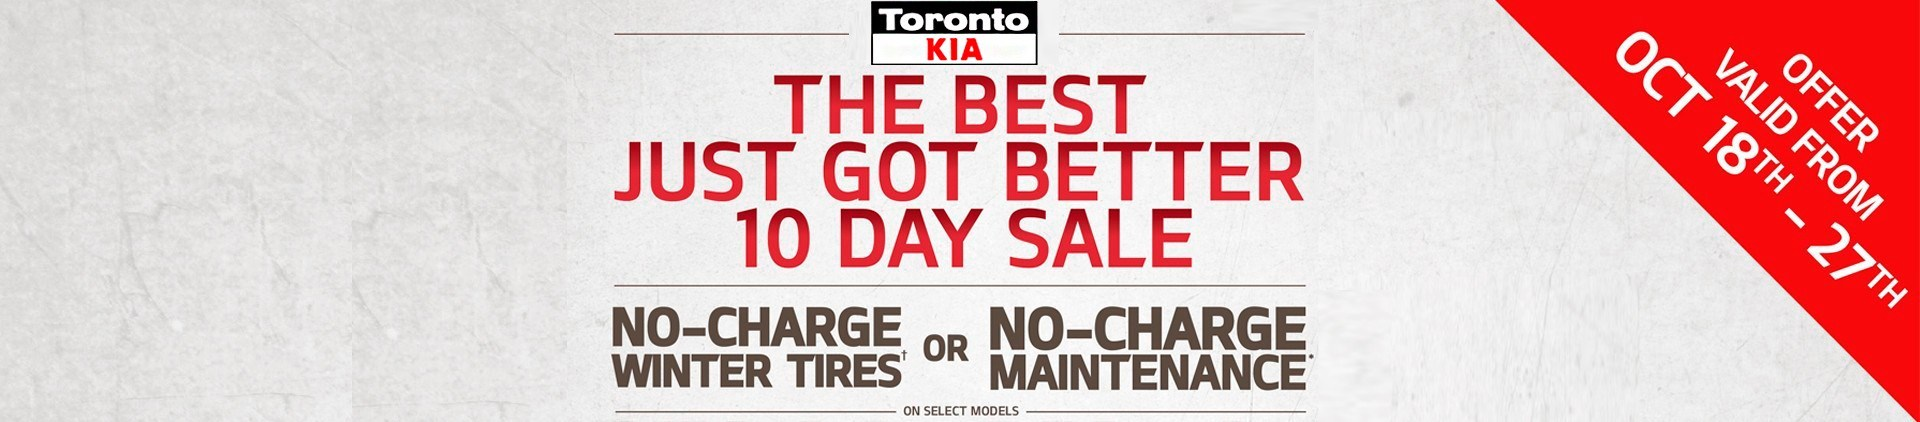 10 Day Sales